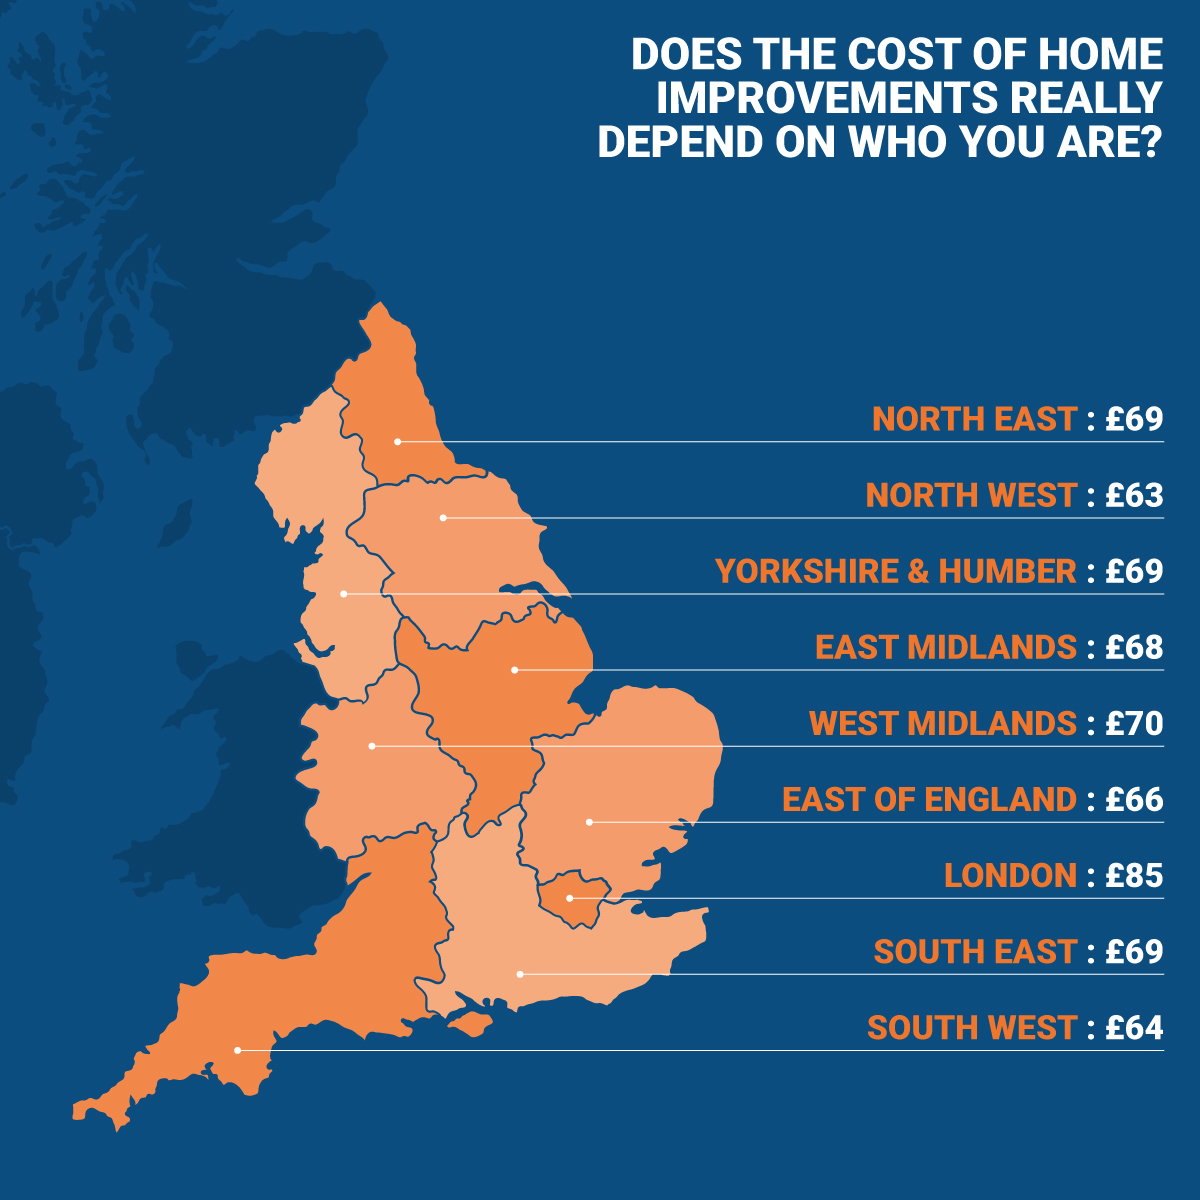 cost-of-home-improvements-01